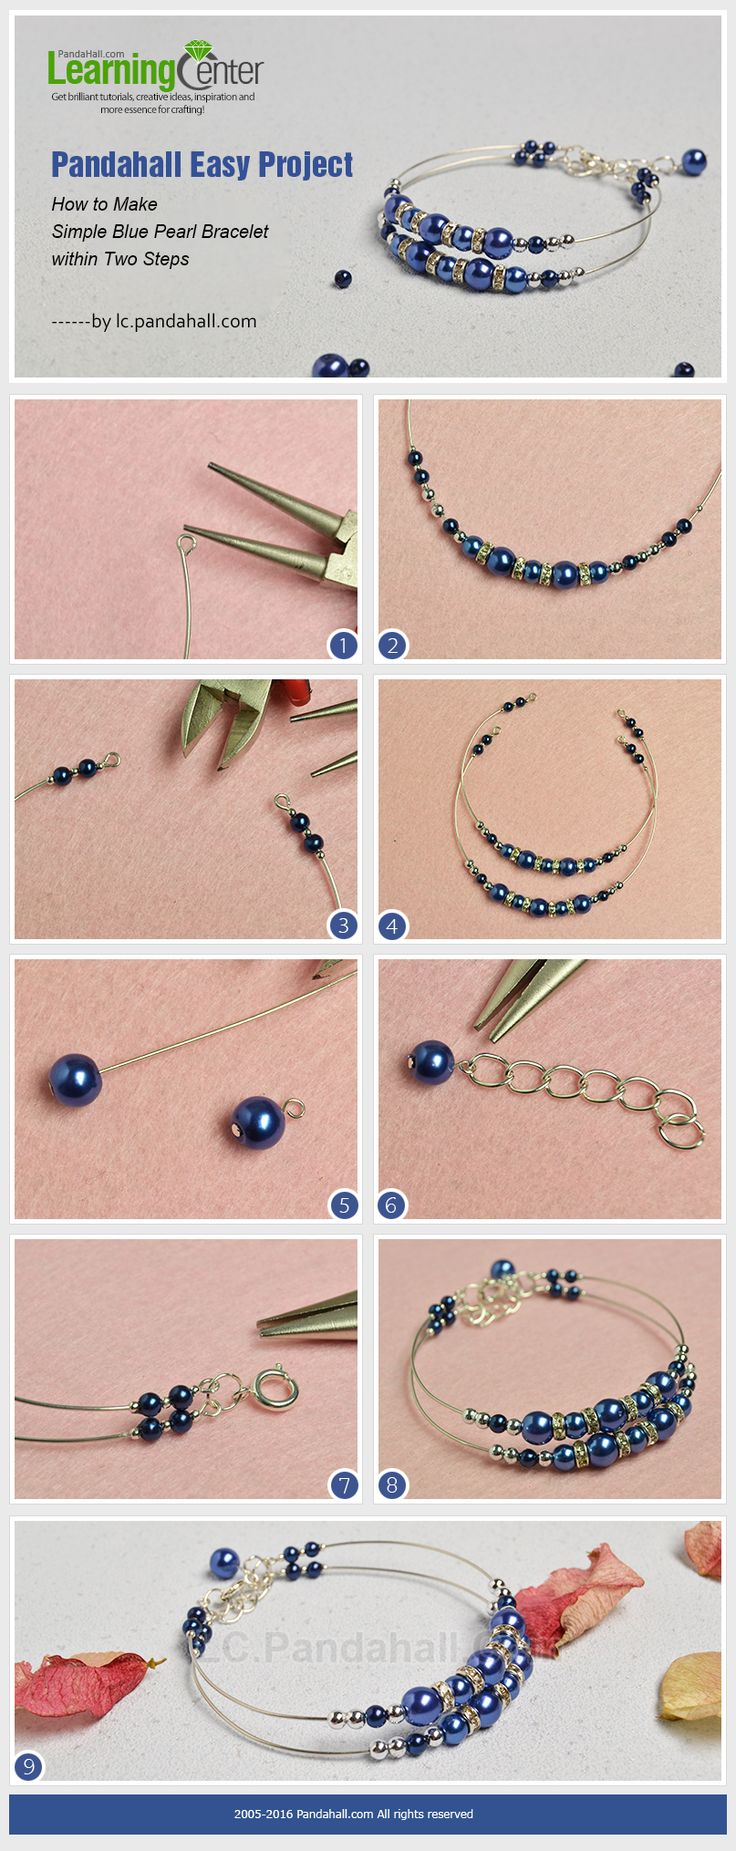 Pandahall Easy Project- How to Make Simple Blue Pearl Bracelet within Two Steps